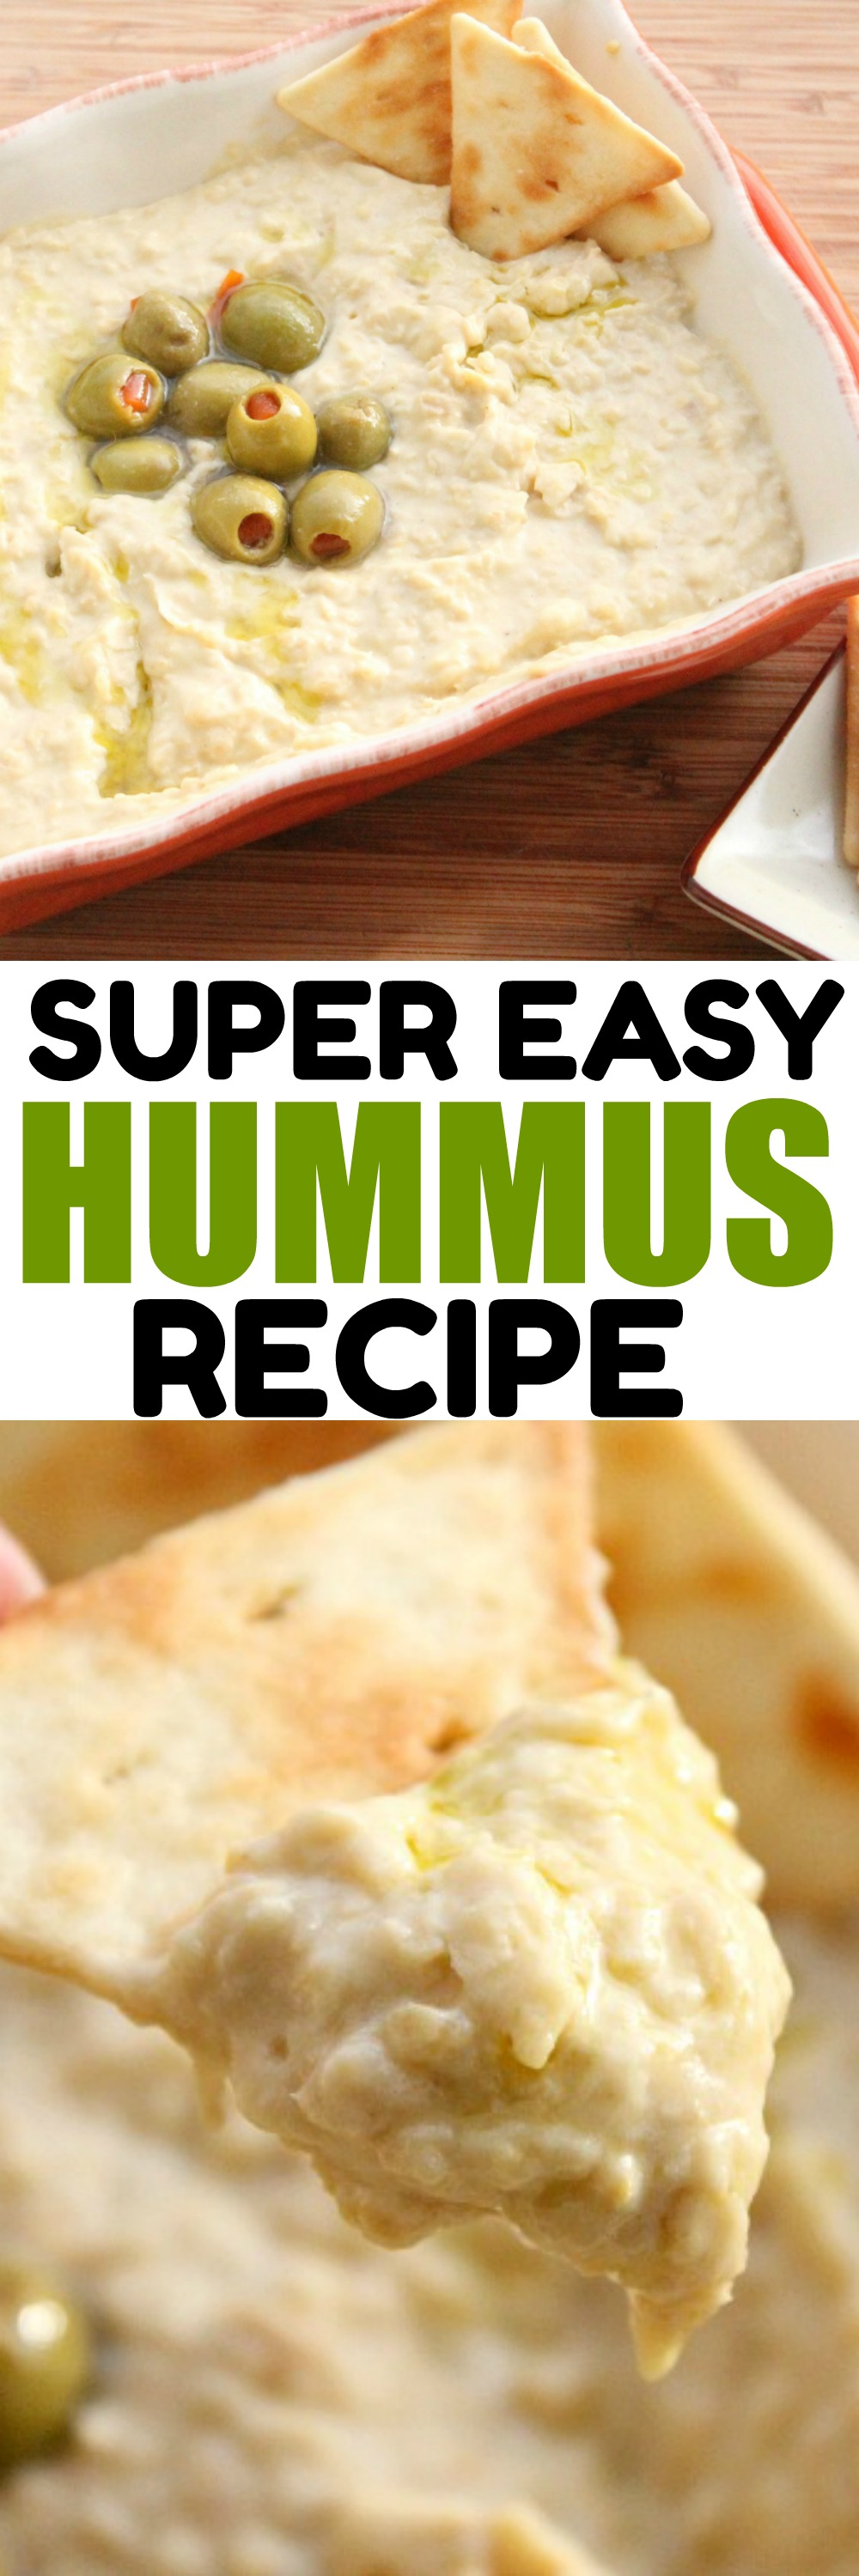 SUPER Easy Hummus Recipe. This Classic Hummus Recipe is made from canned garbonza beans. Top this hummus with olives, peppers or eat as is. It's so yummy and great for a party dip. #Hummus #PartyDip #ChipsandDip